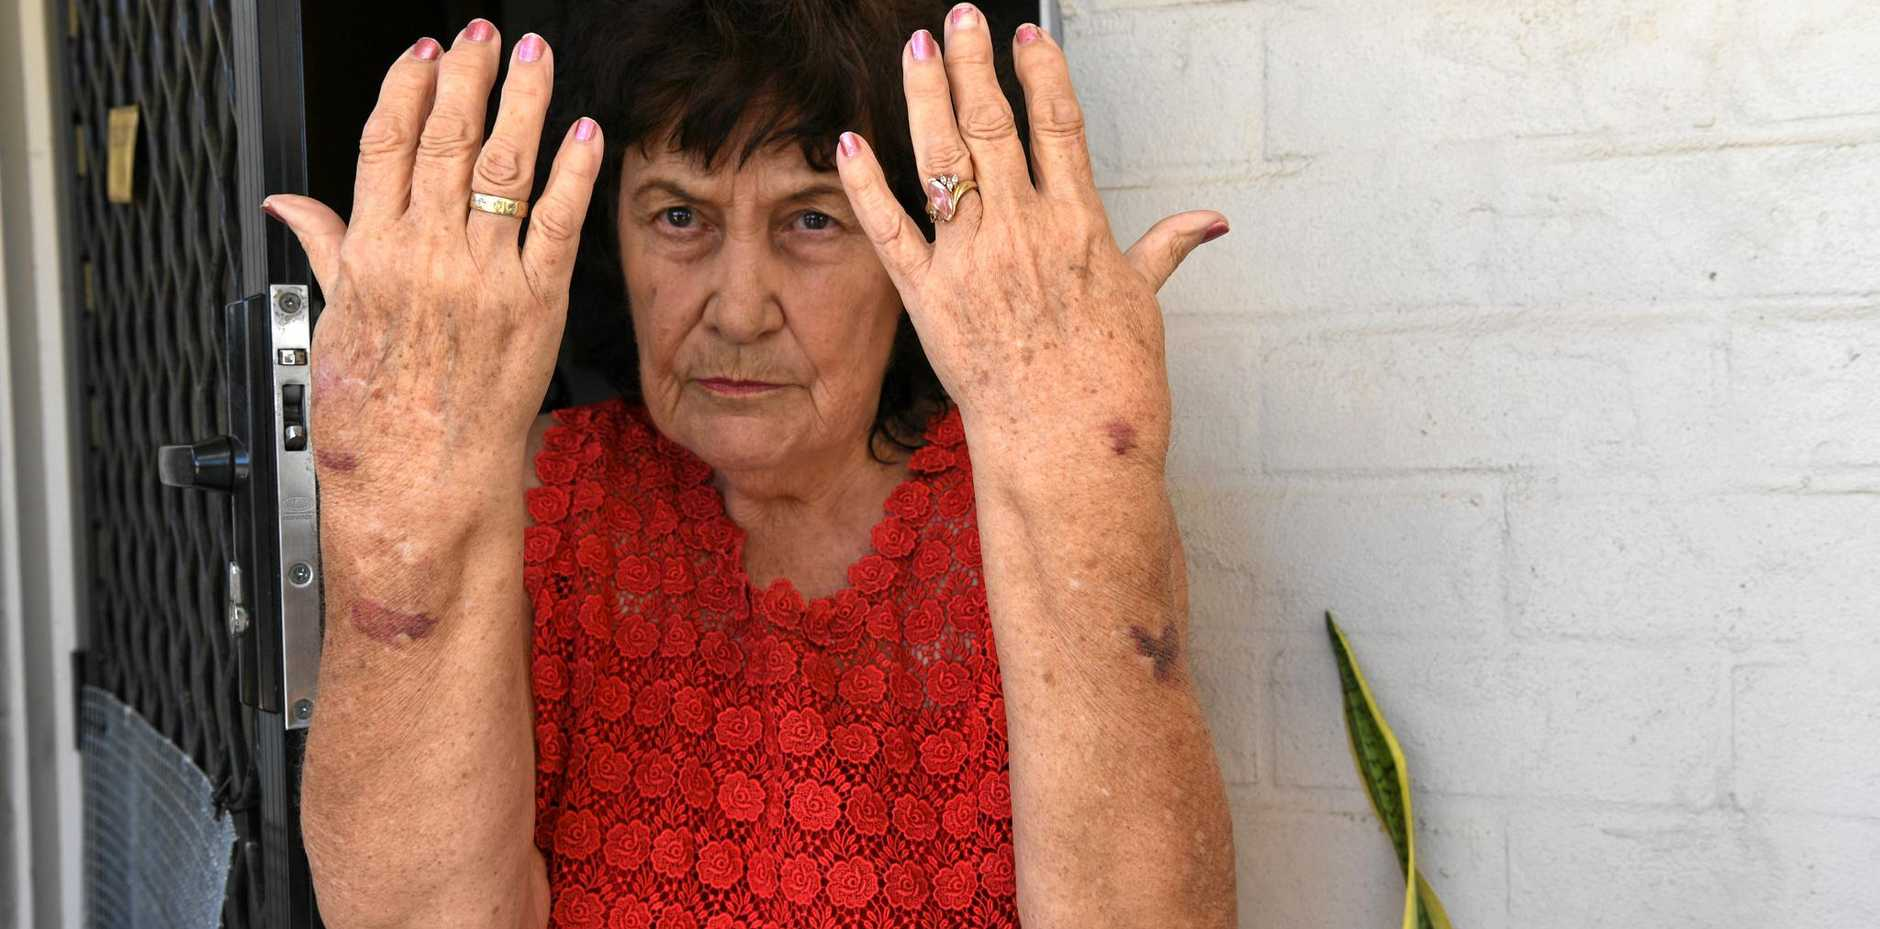 KILLER DOGS: Ruth VonBulow-Bauer was attacked by dogs on her front verandah. The dogs had just killed her cat Lockie.